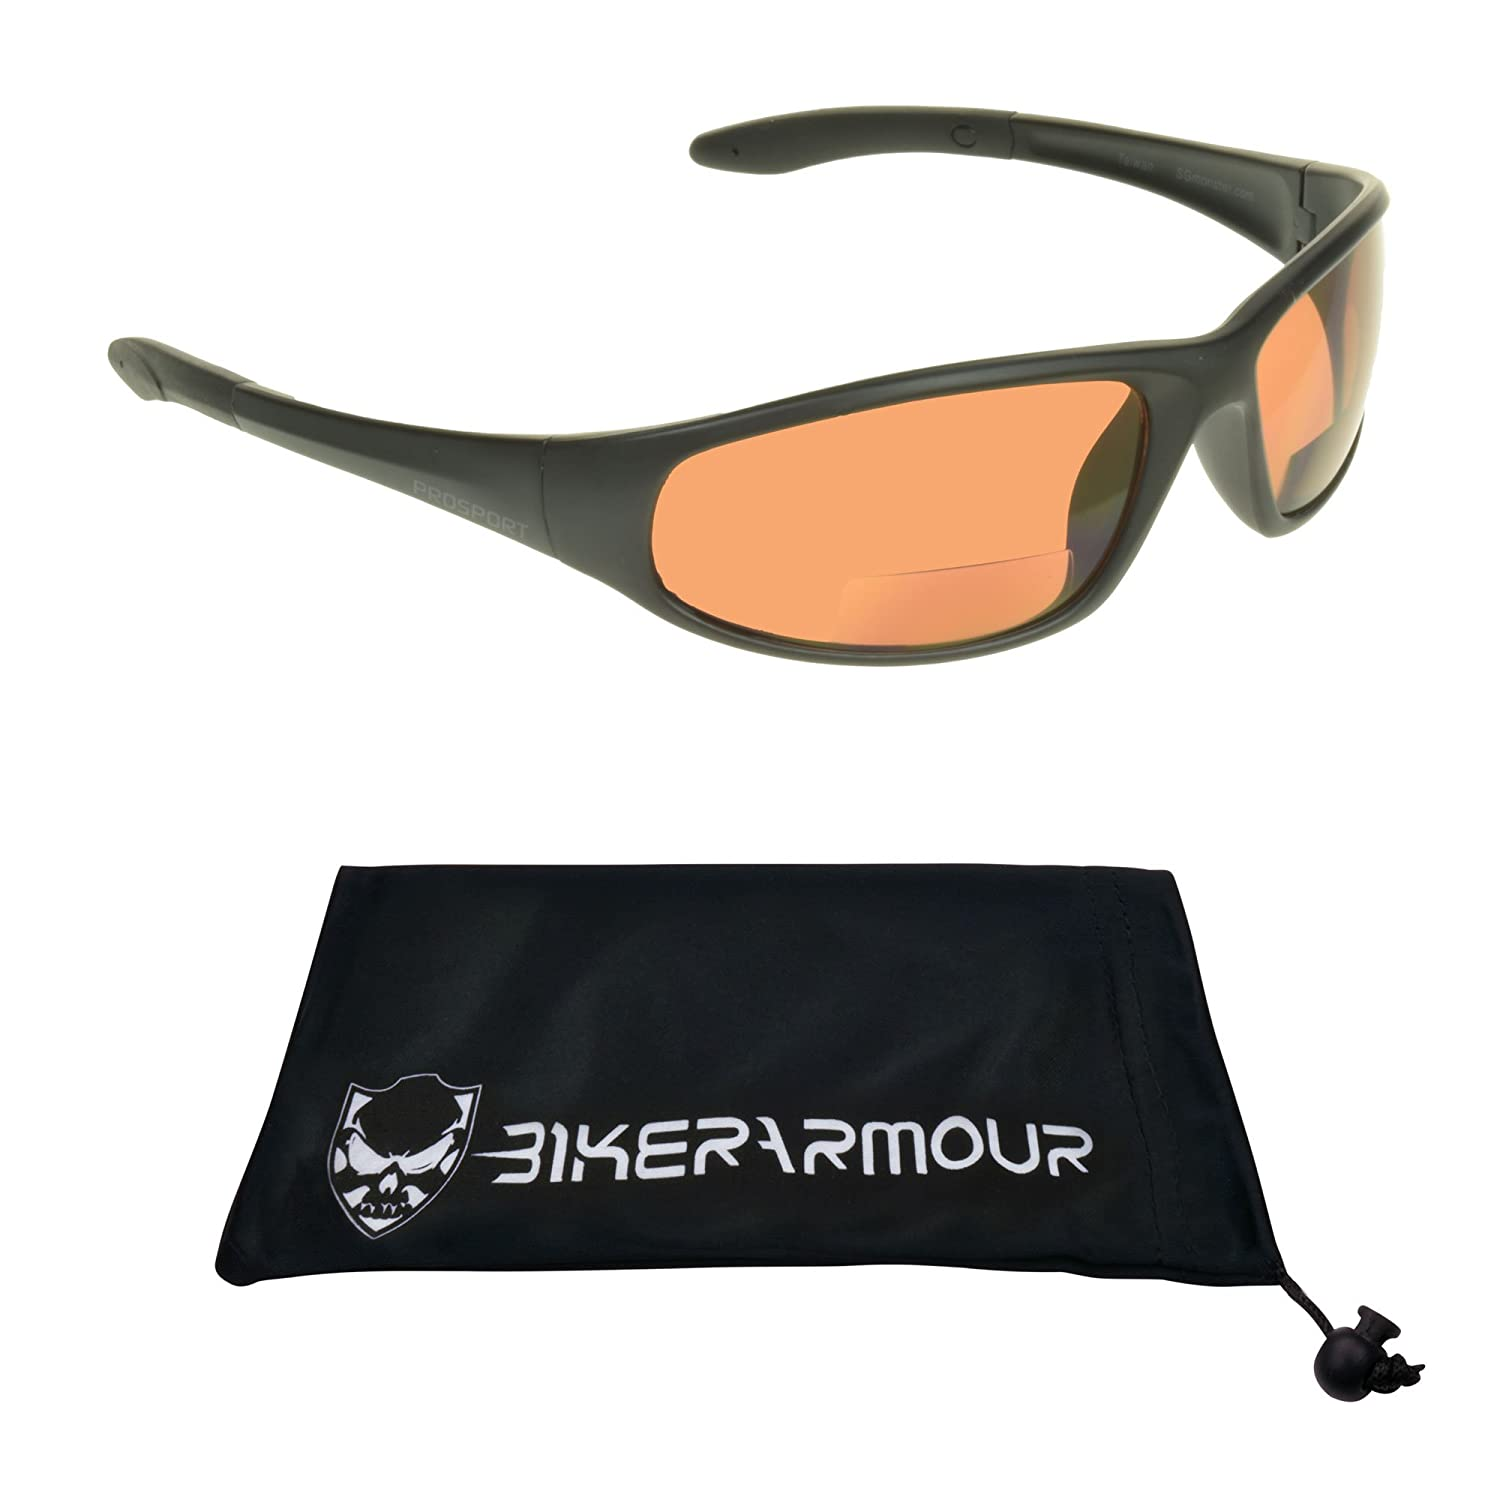 Motorcycle Blue Blocker HD Lens Bifocal Sunglasses 2.00 for Men and Women. Z87.1 Polycarbonate Lens, Wraparound Frame & Cleaning Case. Puma/HD/2.0 Bikershades Puma bifocal hd 2.00